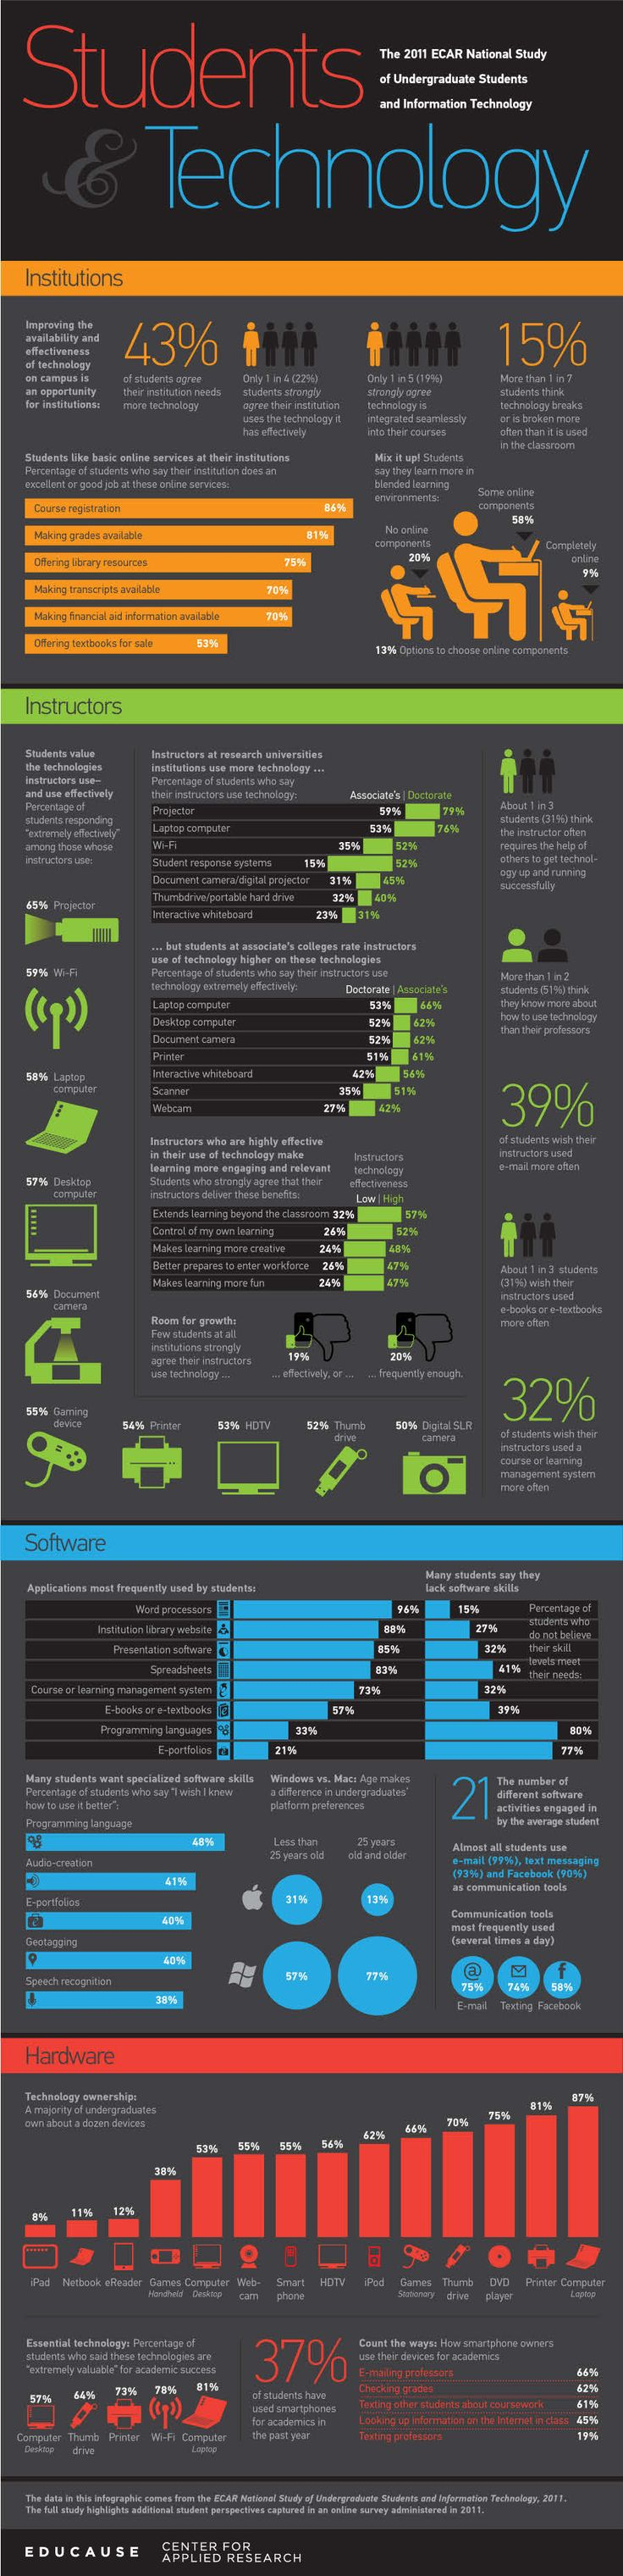 Video Game Industry - Statistics & Facts